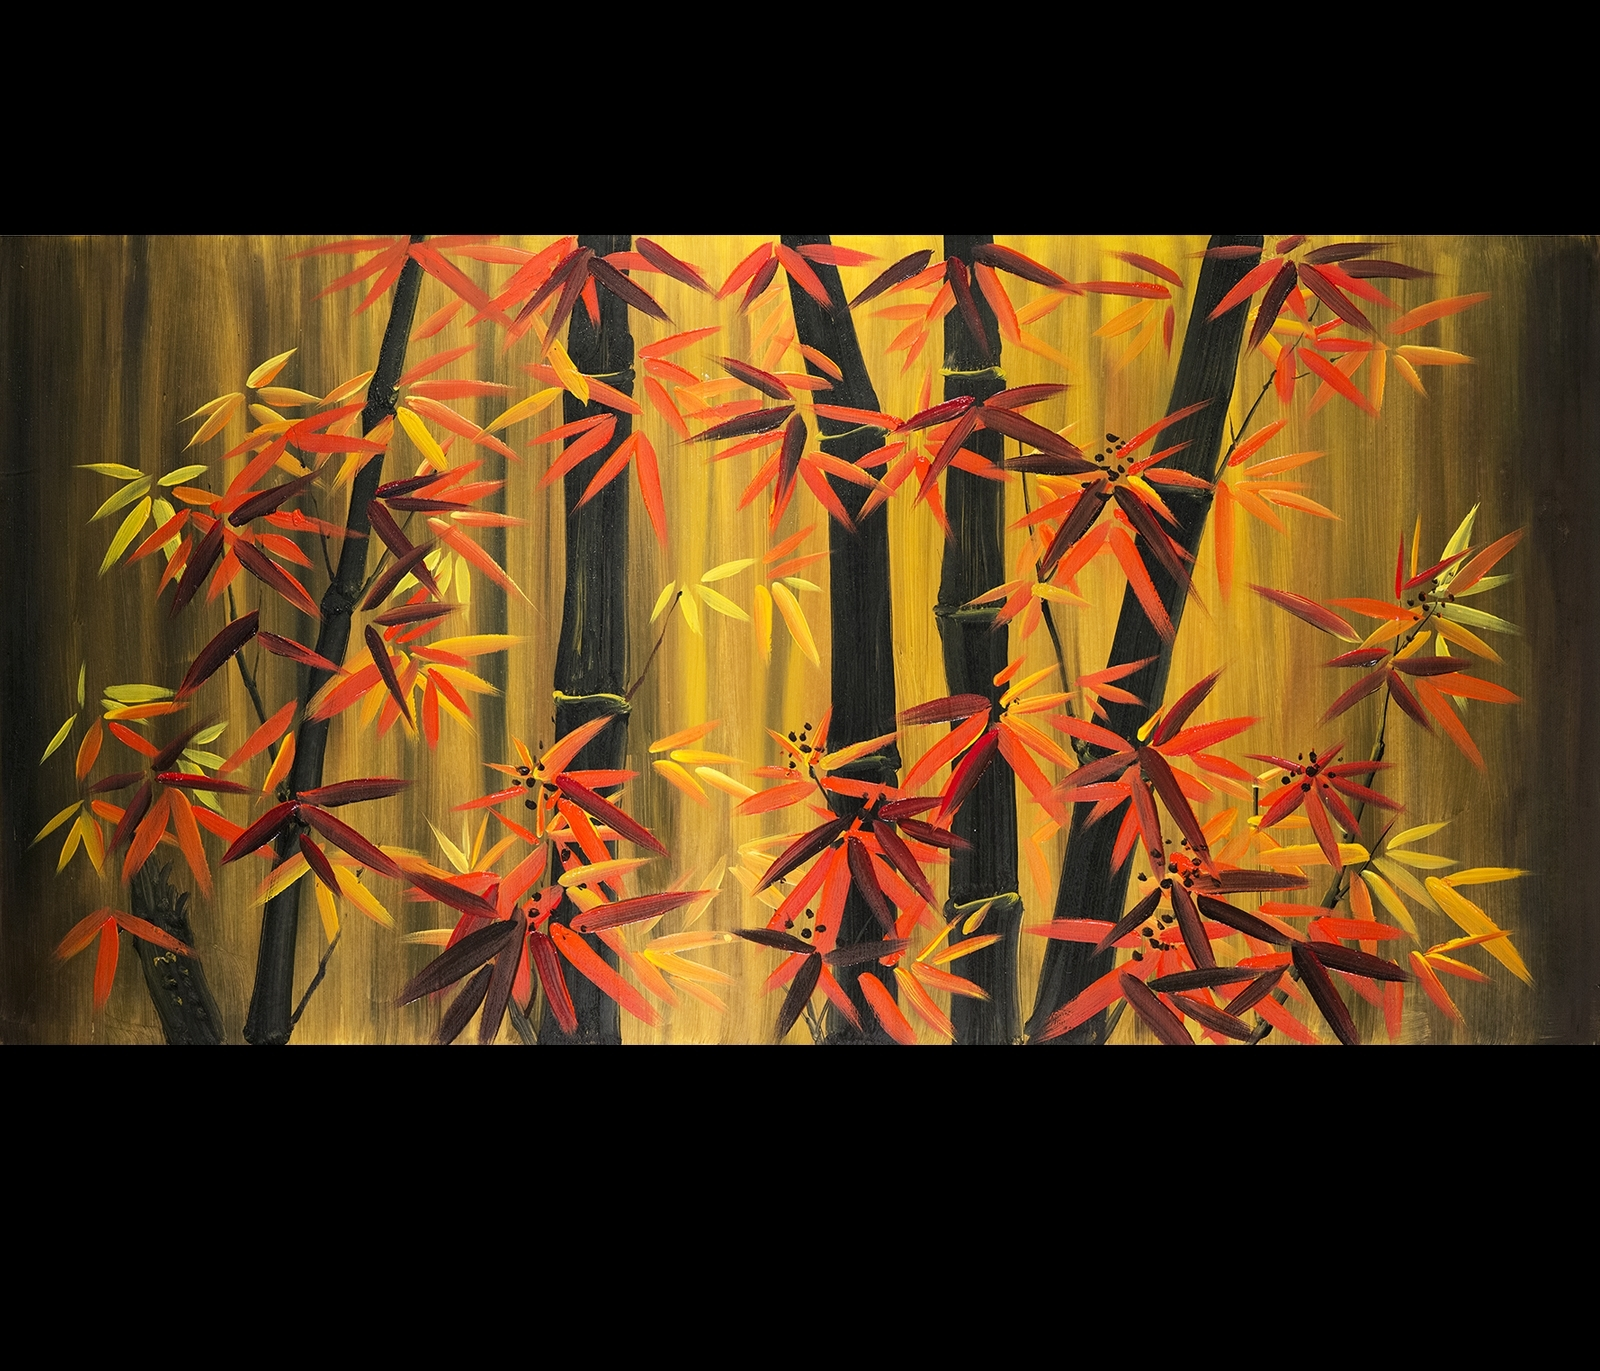 Artwork Canvas Art Fine Art Prints Wall Art Japanese Bamboo Art With Regard To Current Japanese Canvas Wall Art (Gallery 13 of 15)